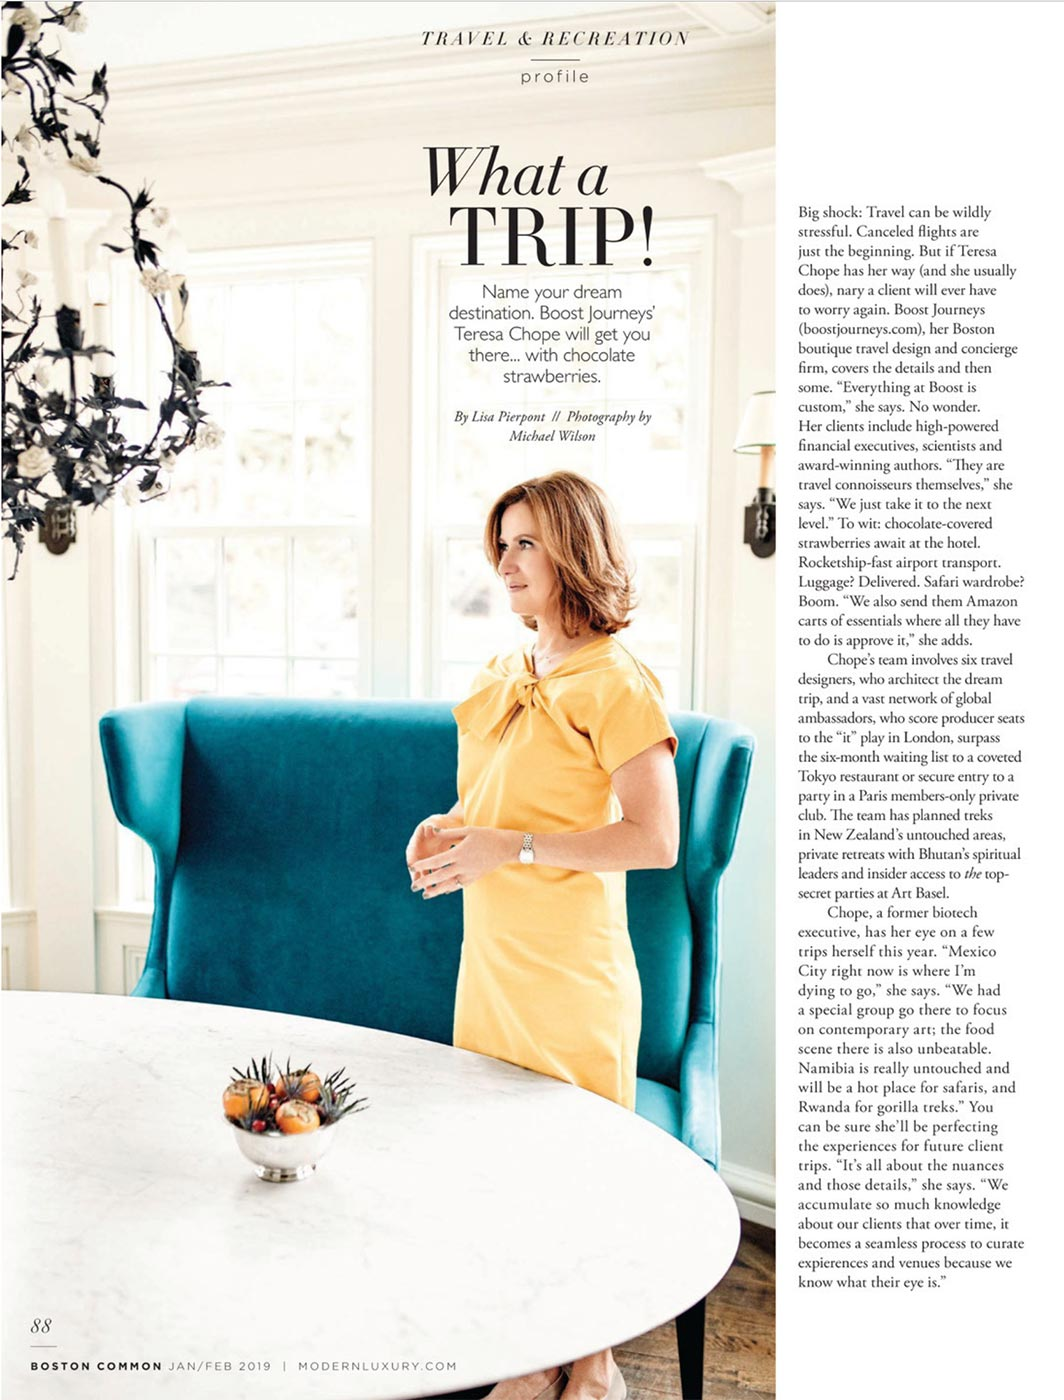 Mdw-Photographic-tearsheet1